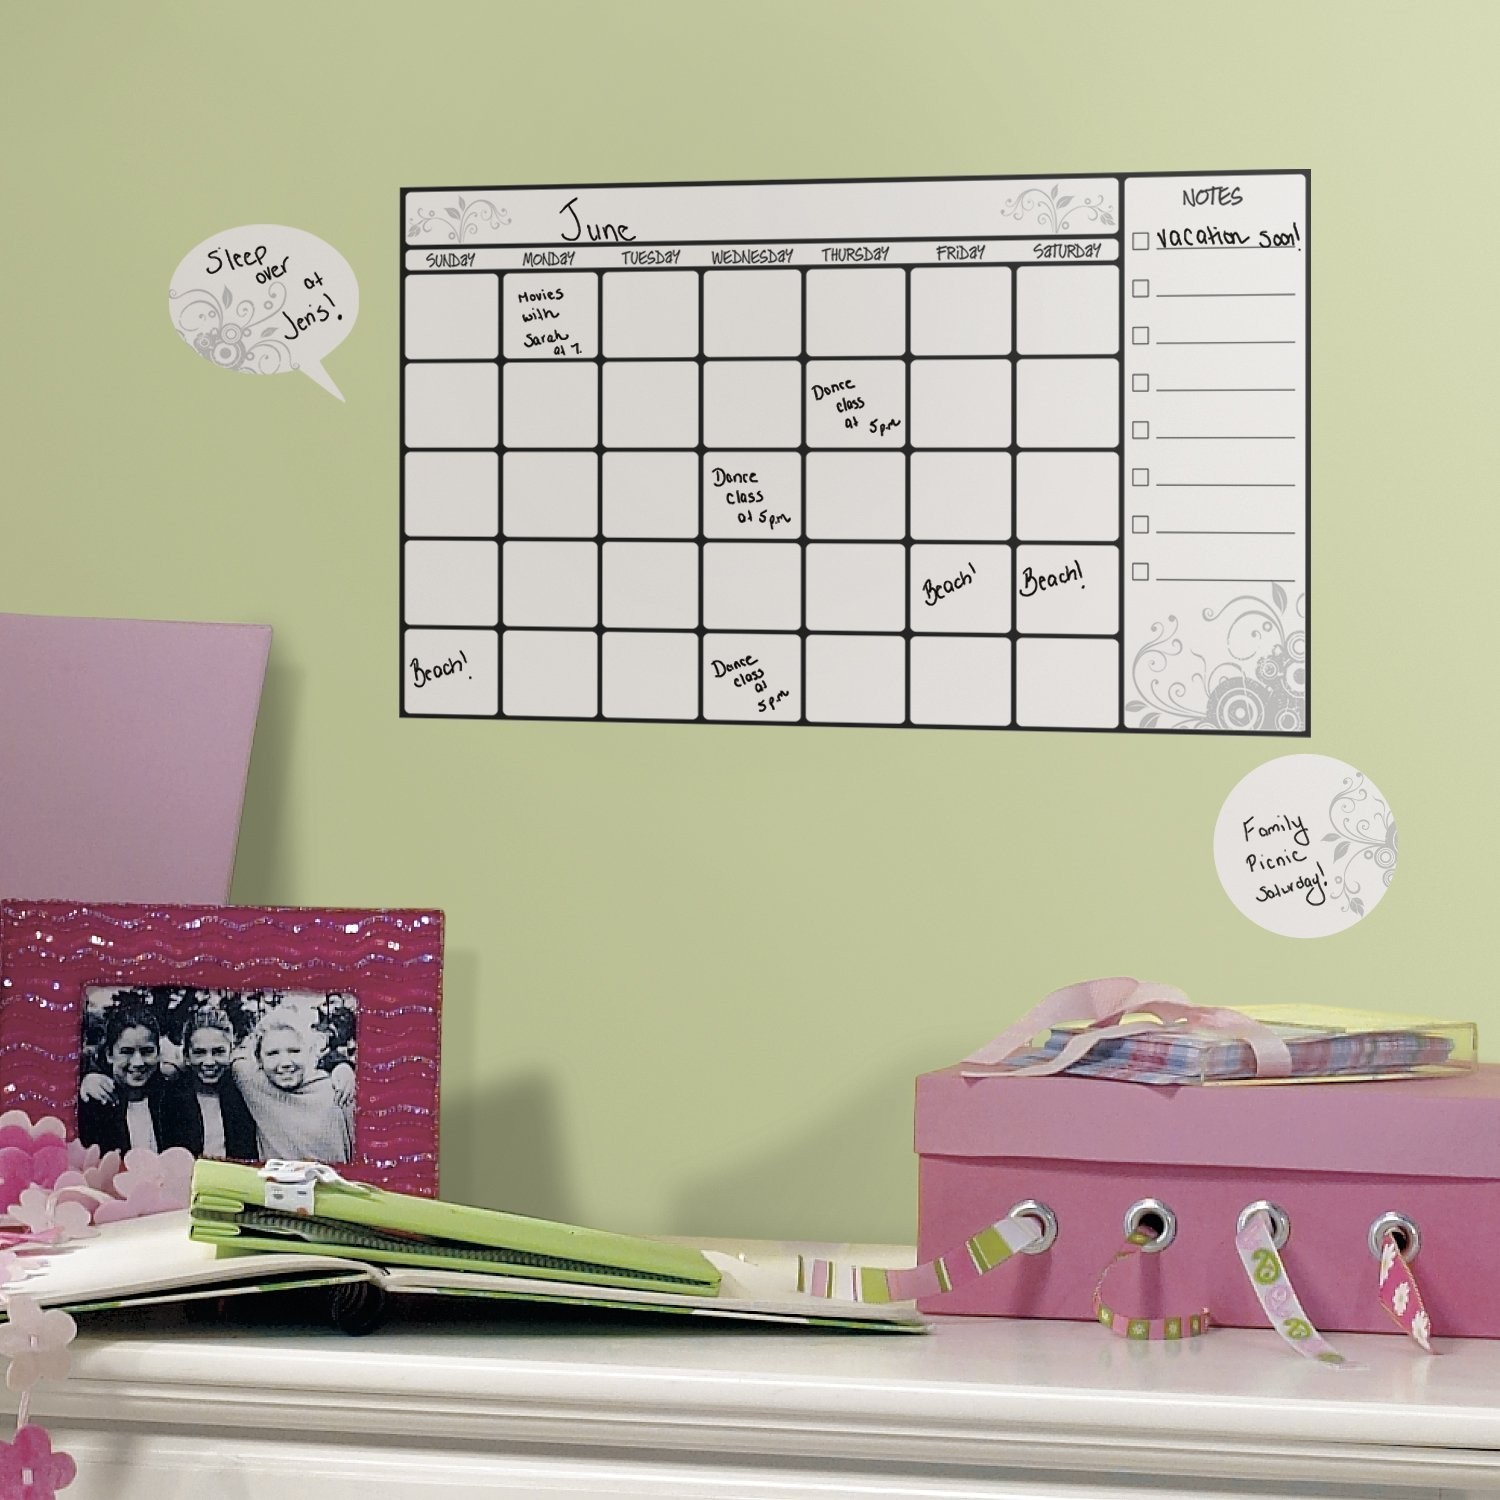 March Reading Month Calendar Activities Recientes Amazon Roommates Rmk1556scs Wall Decal 17 325 Inch X 9 Inch Of March Reading Month Calendar Activities Más Populares Old Style and New Style Dates